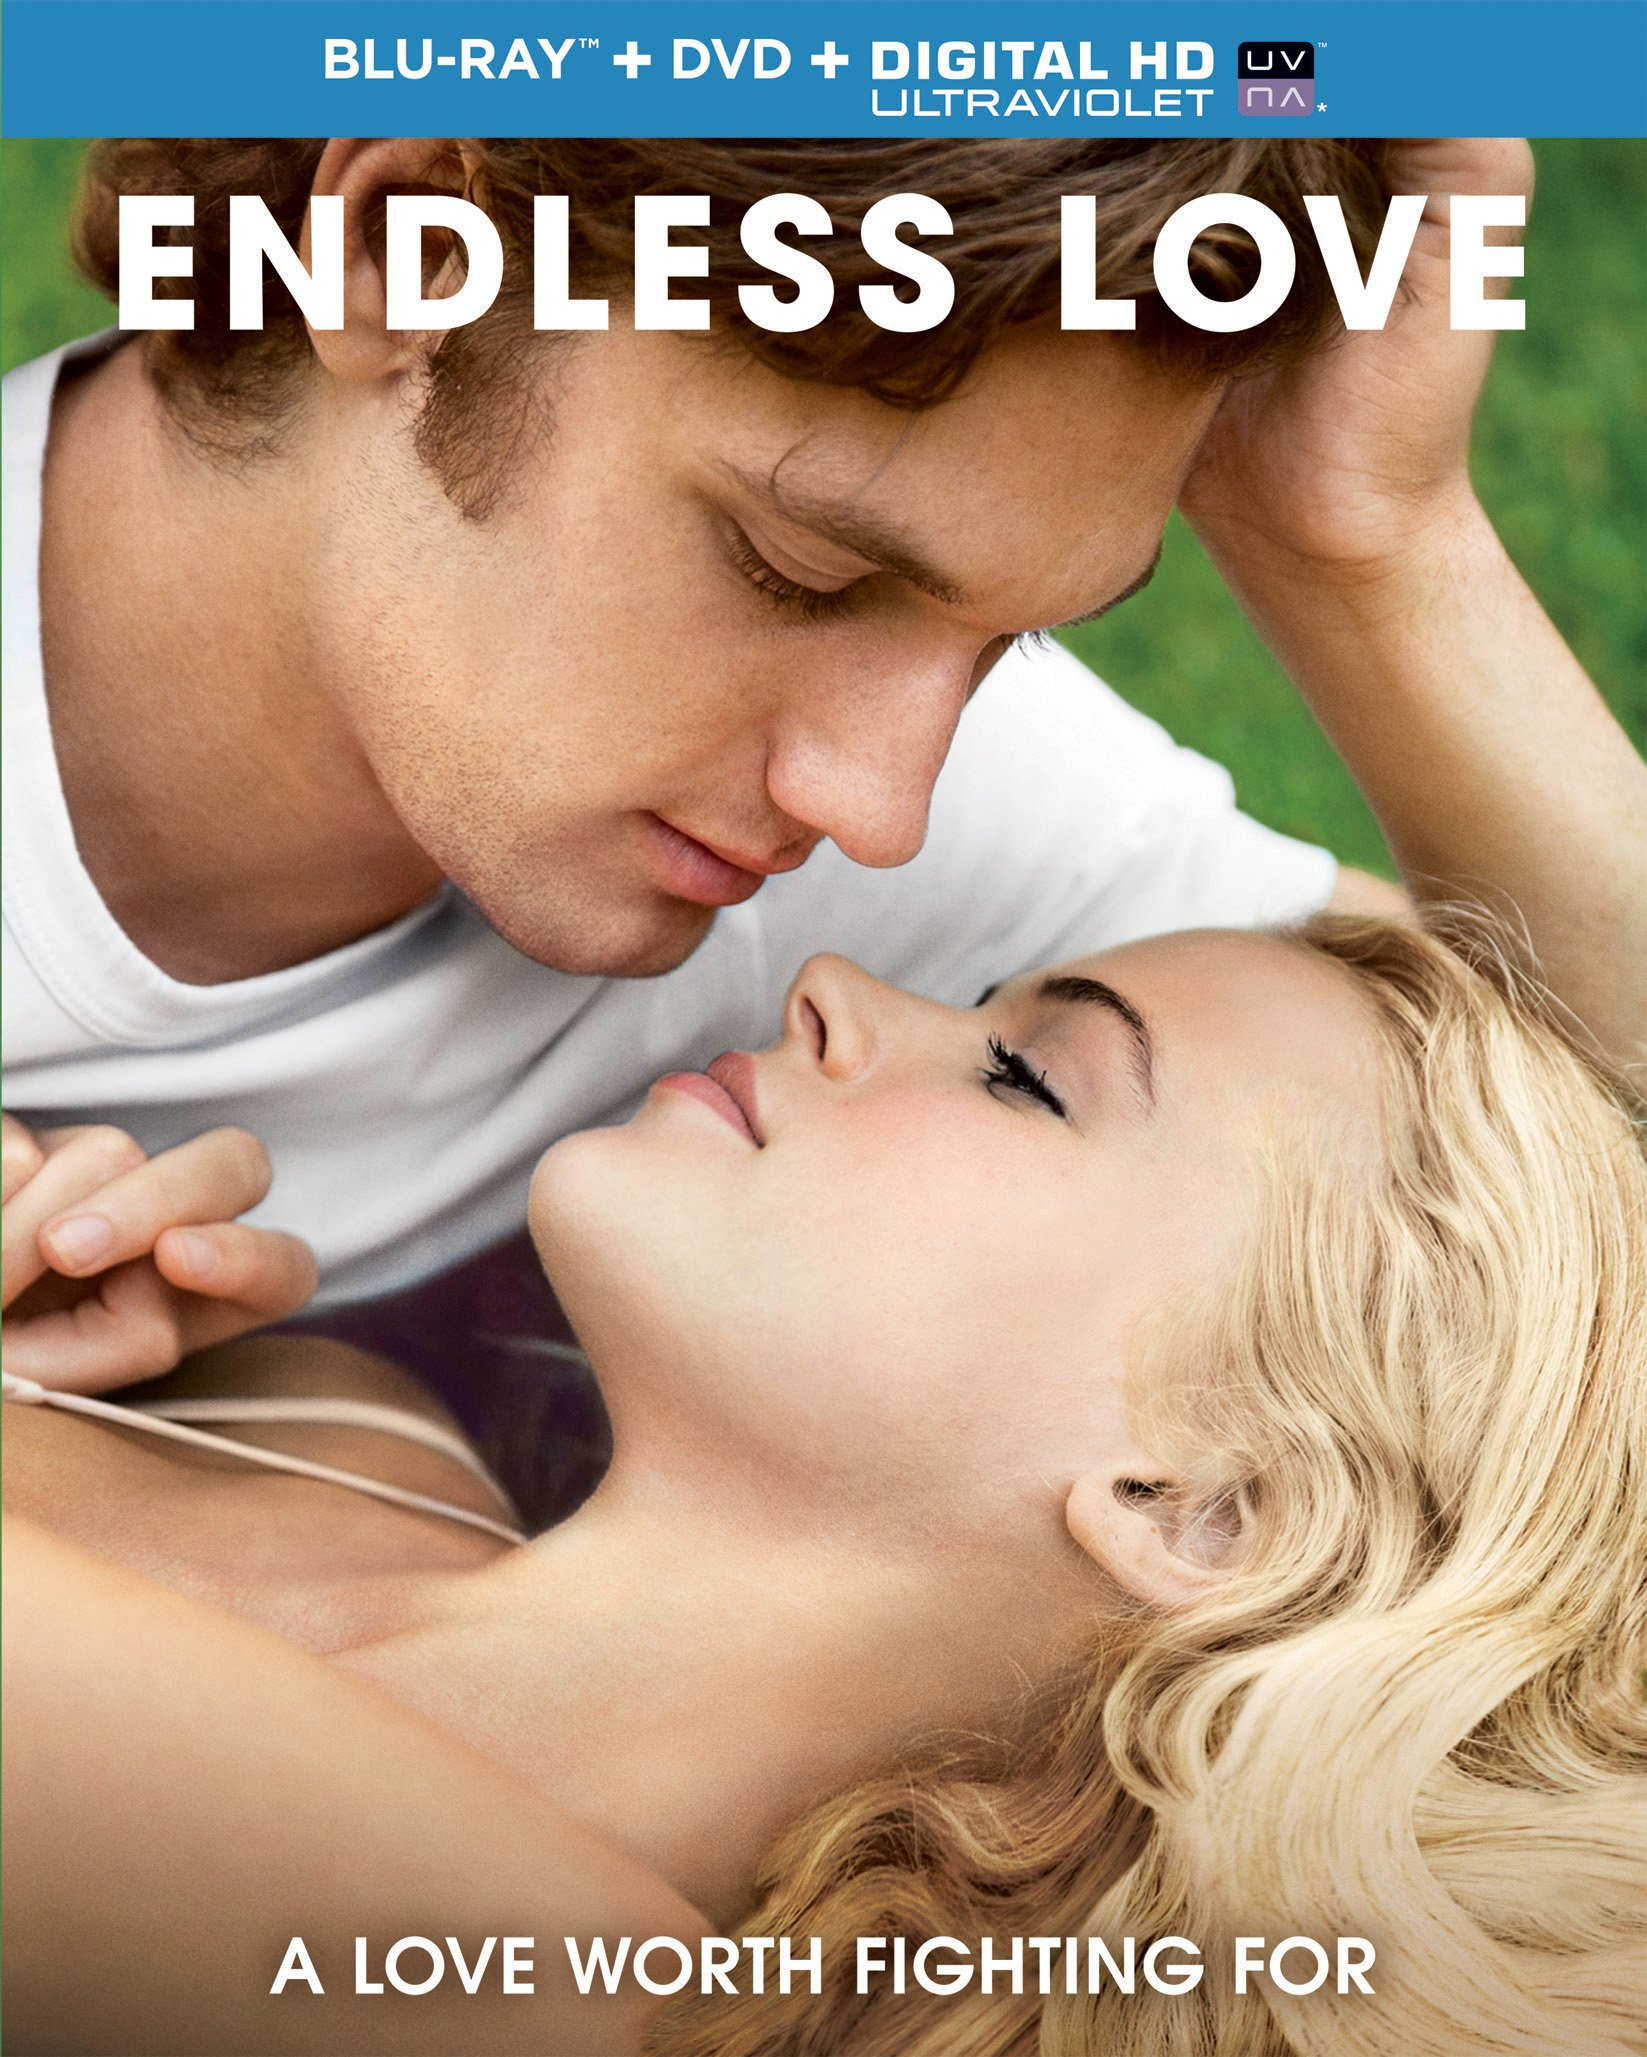 ENDLESS LOVE blu-ray